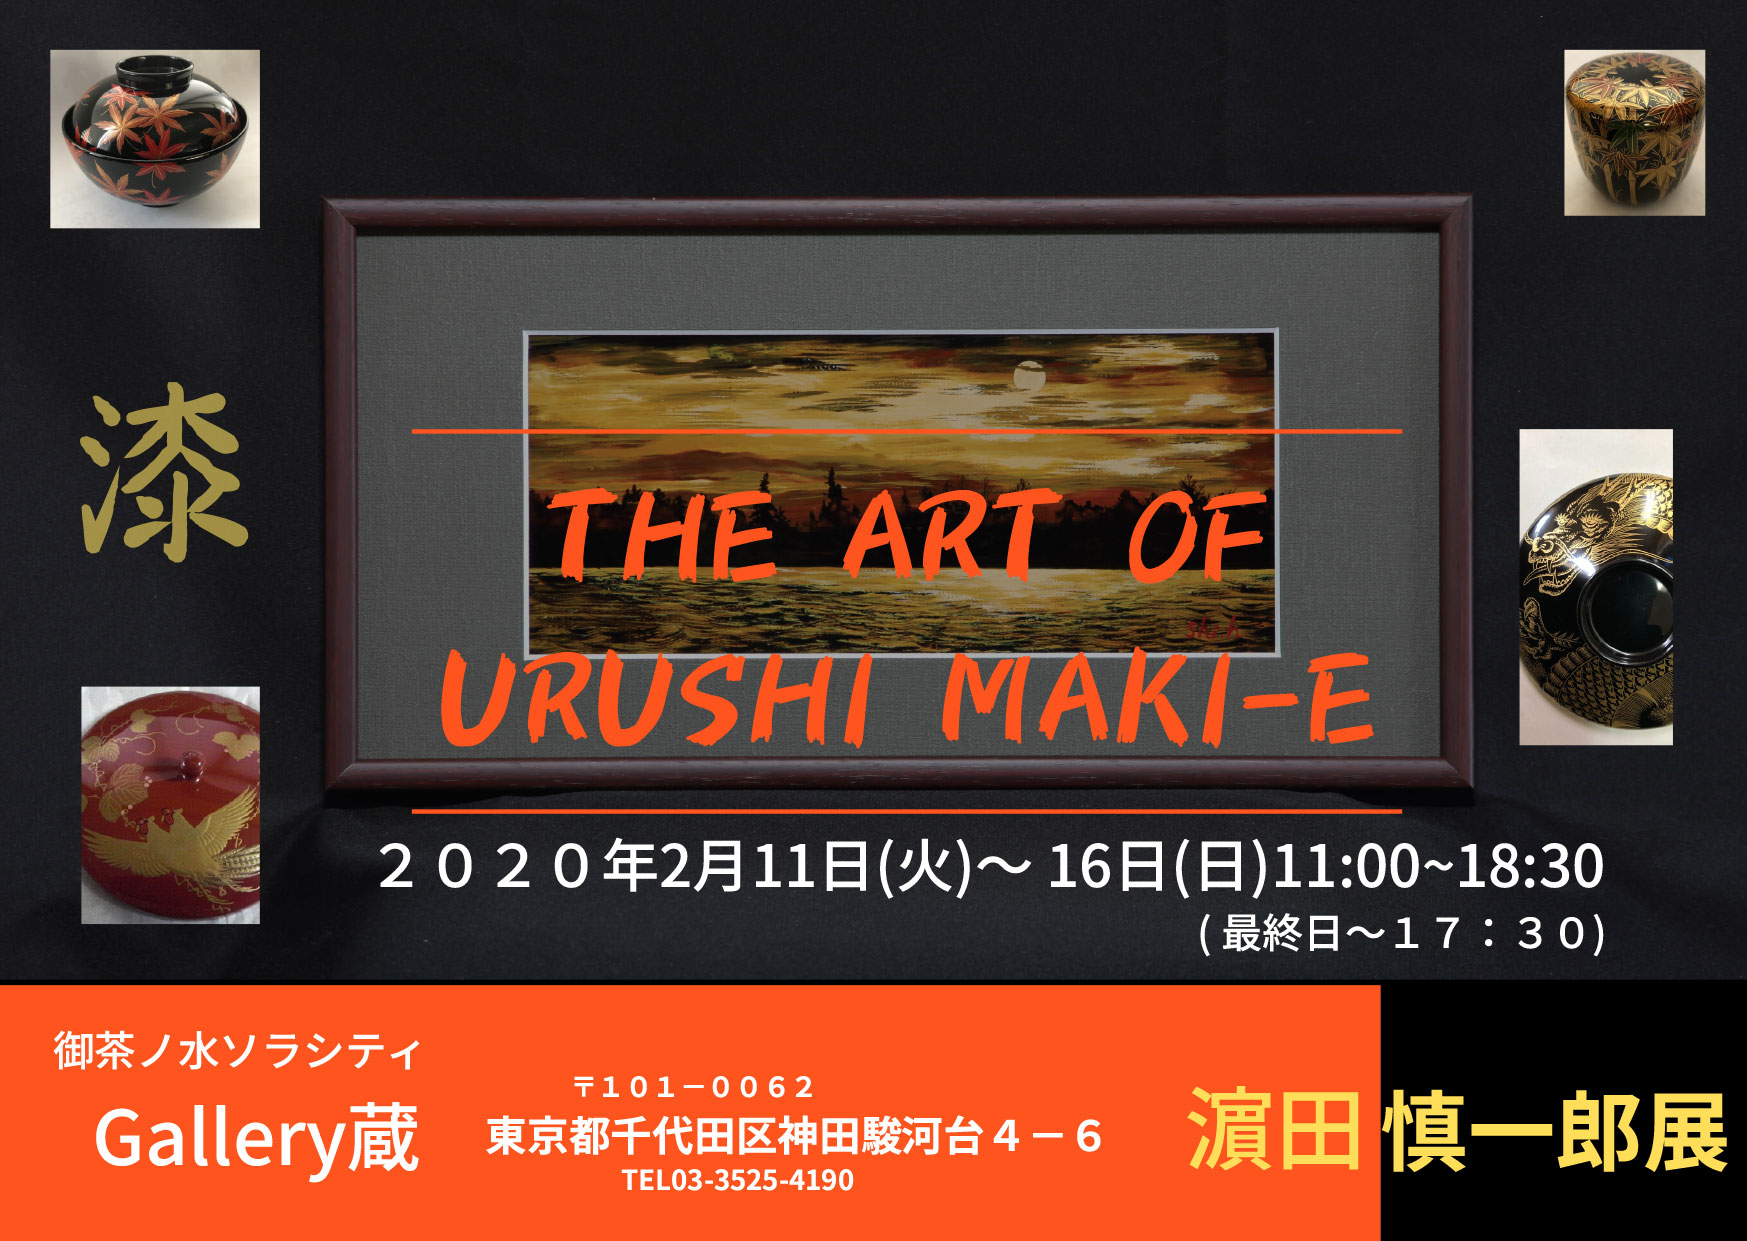 THE ART OF URUSHI MAKI-E